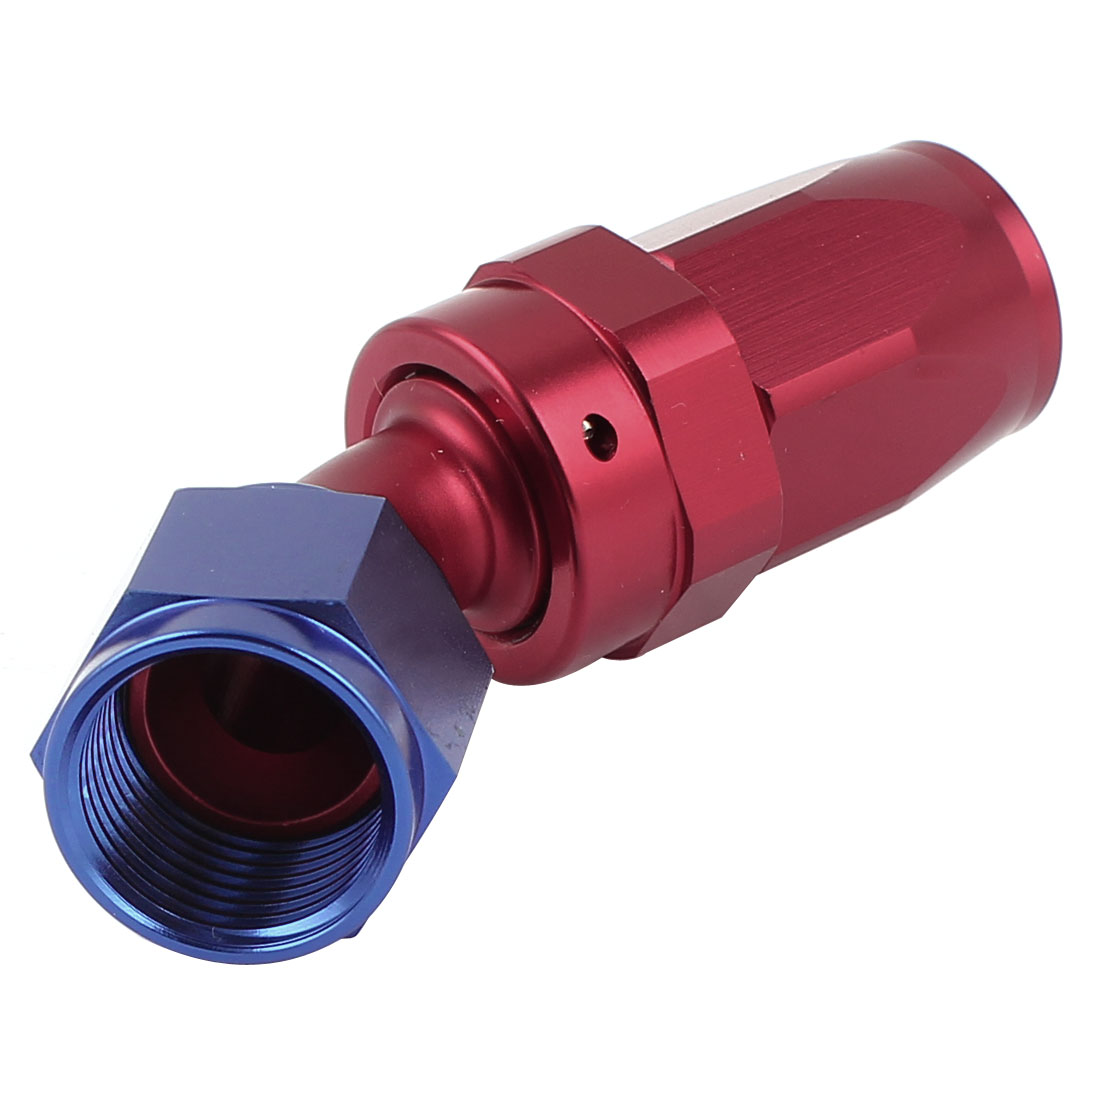 45 Degree Joint Swivel Oil Fuel Gas Line Hose Pipe End Adapter Connector